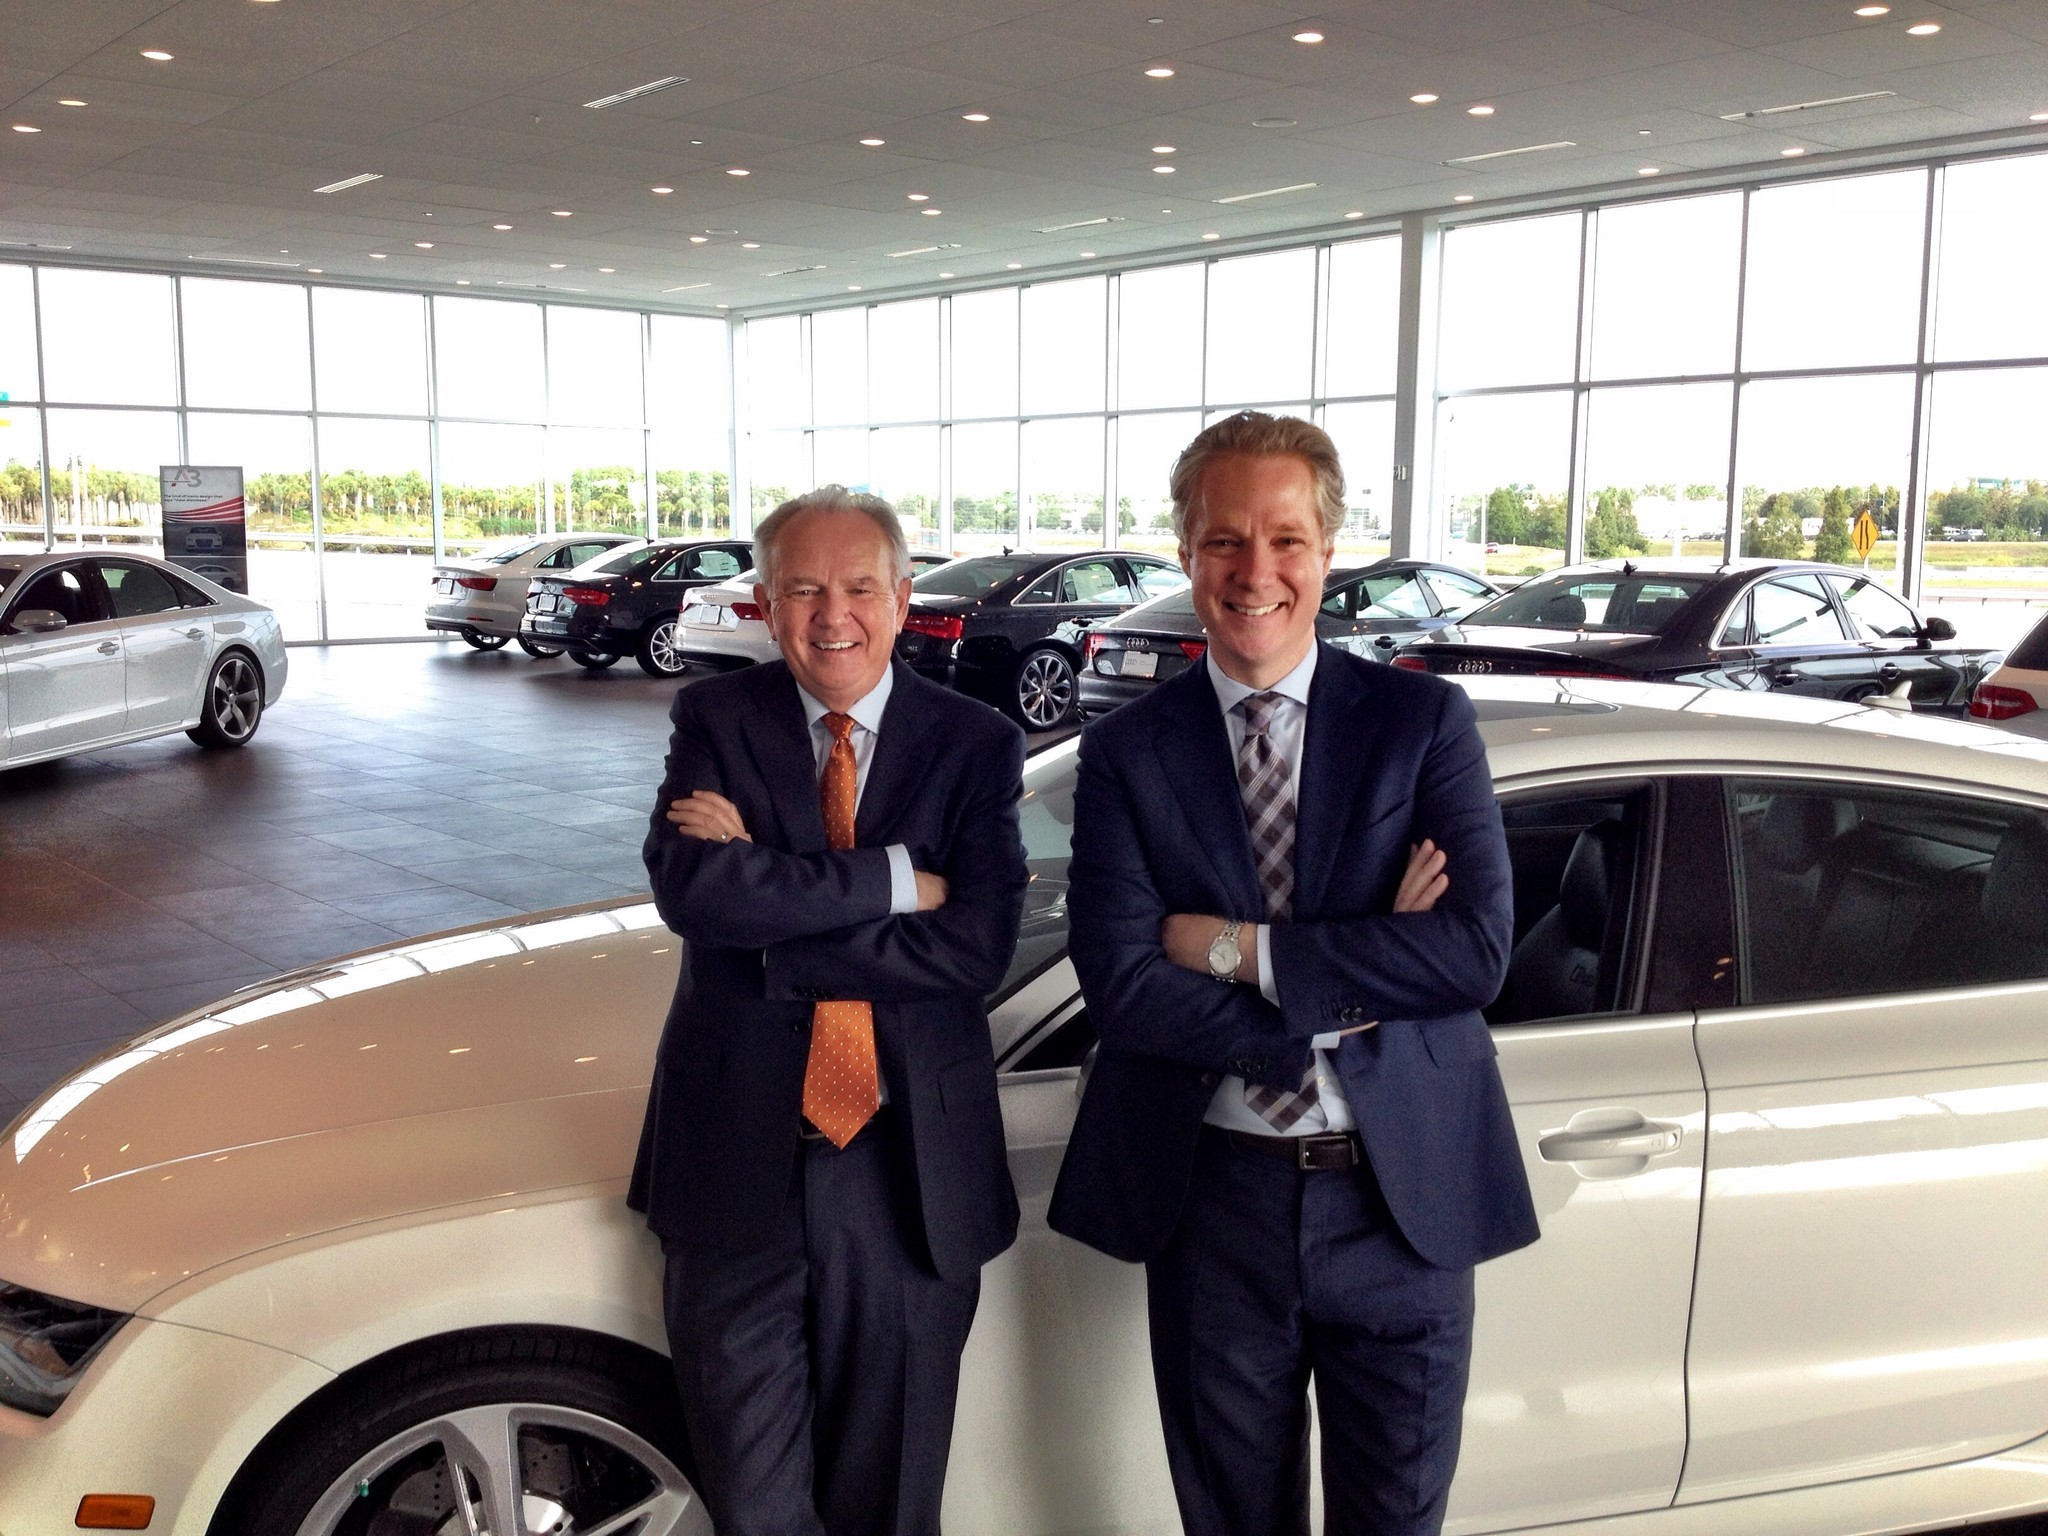 Audi AutoNation CEOs Talk About New Partnership Orlando Sentinel - Audi north orlando